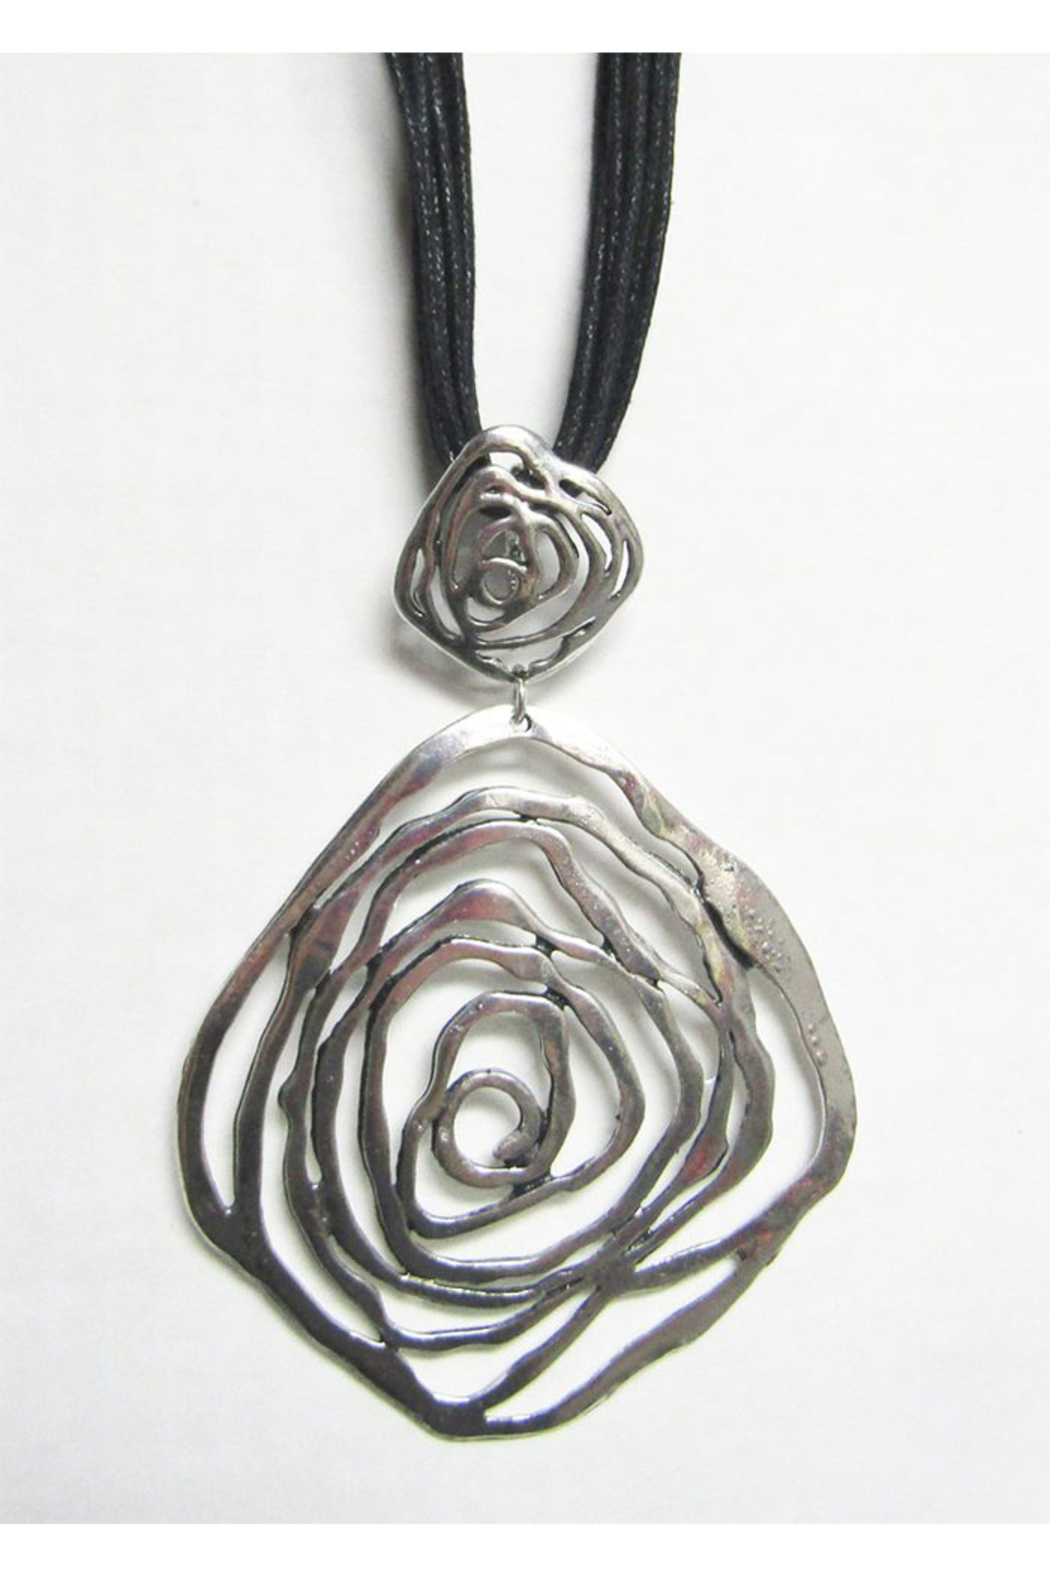 AUG Long Black Cord With Silver Metal Pendant - Swirls - Main Image